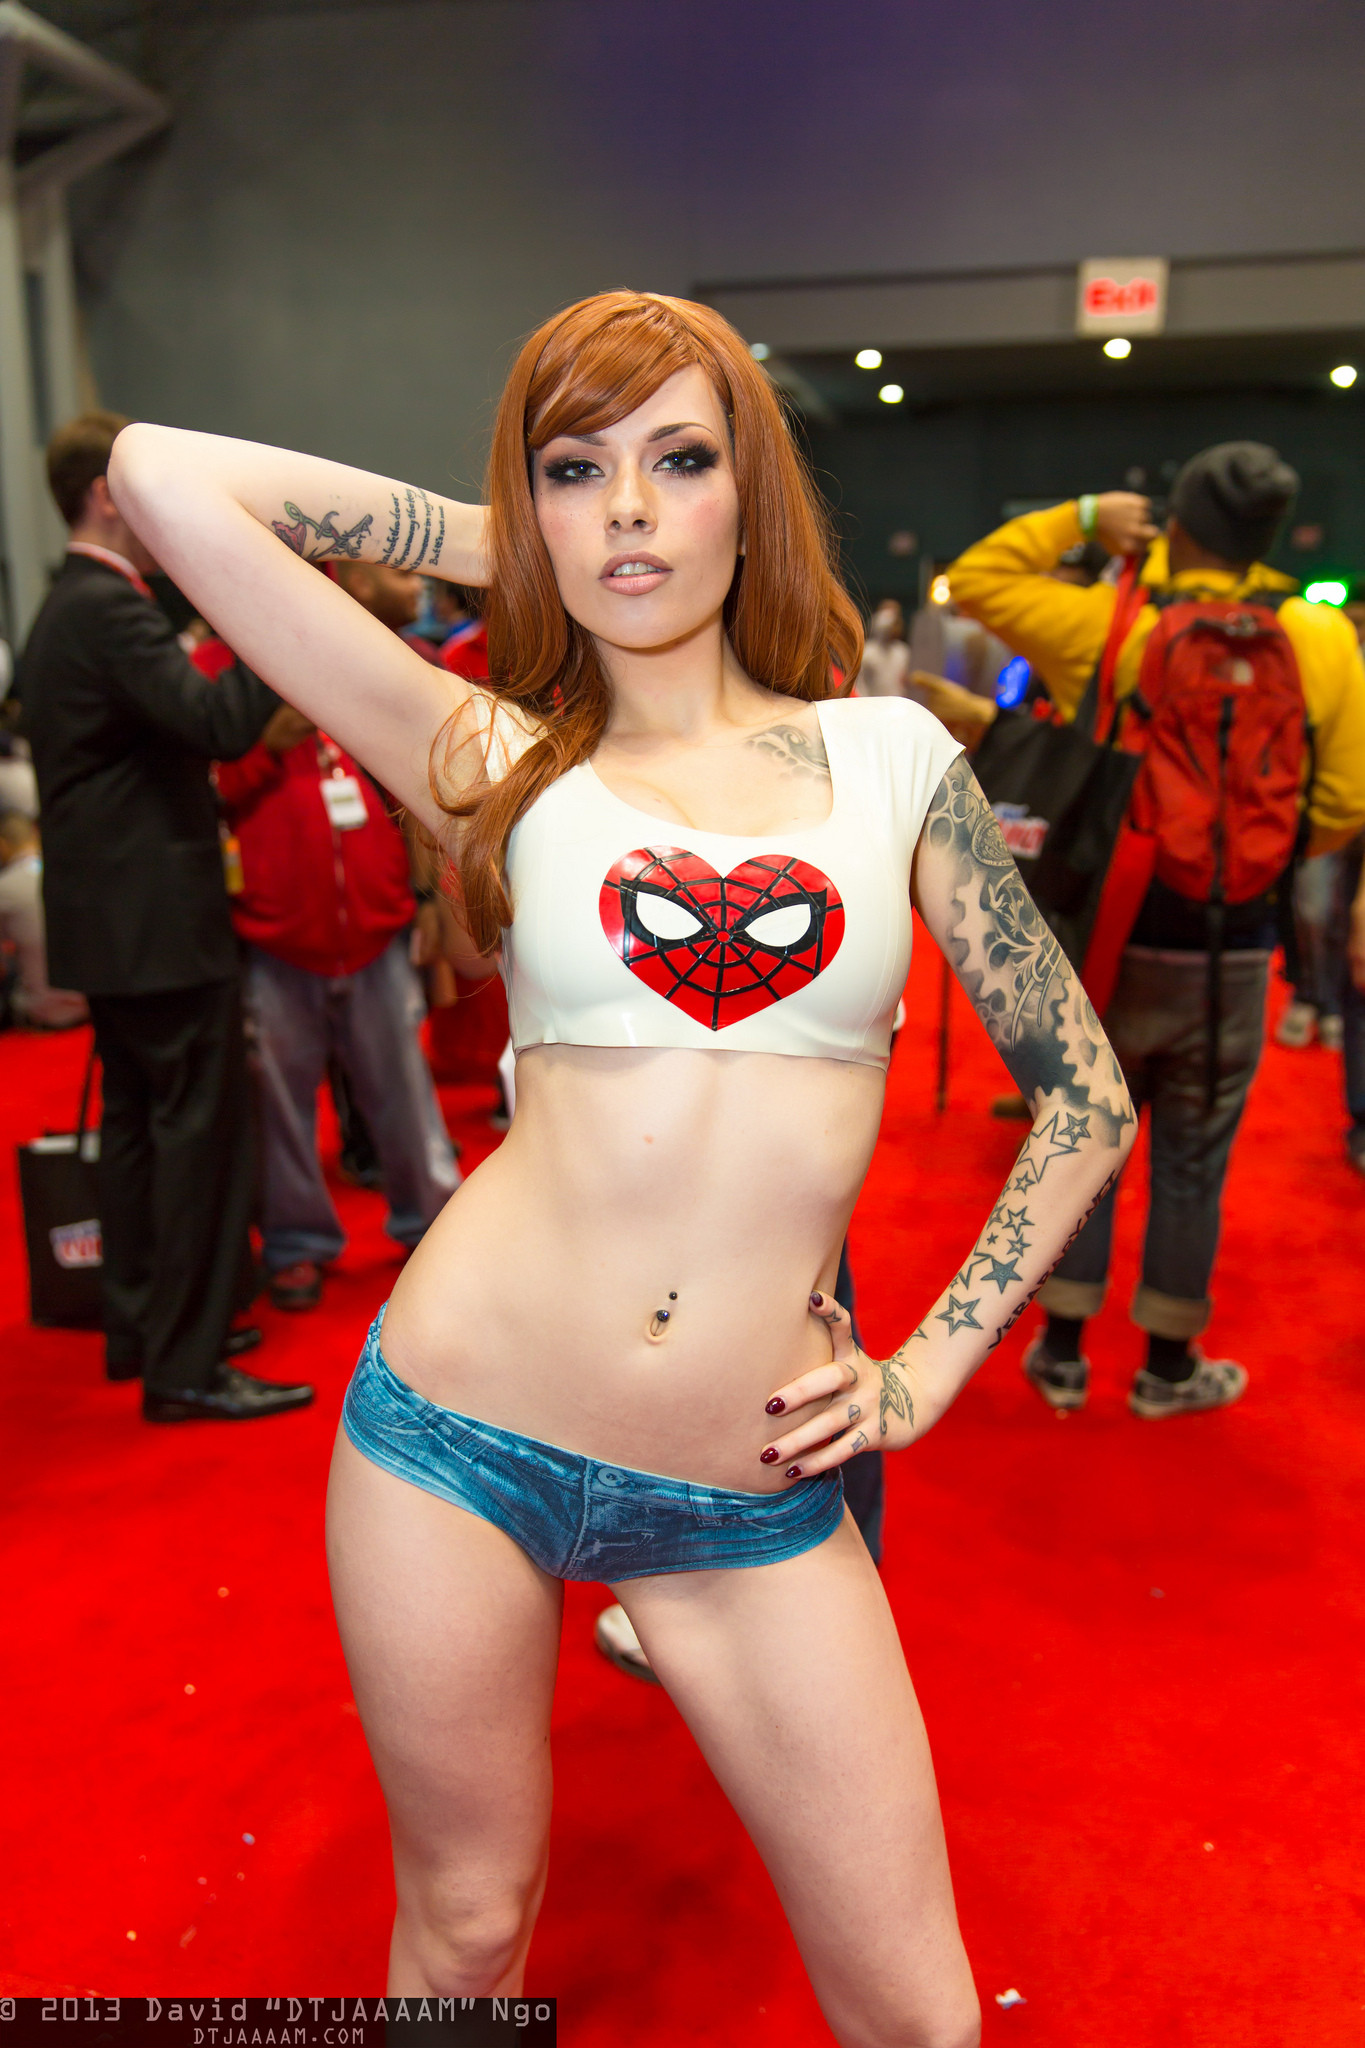 Mary jane cosplay naked